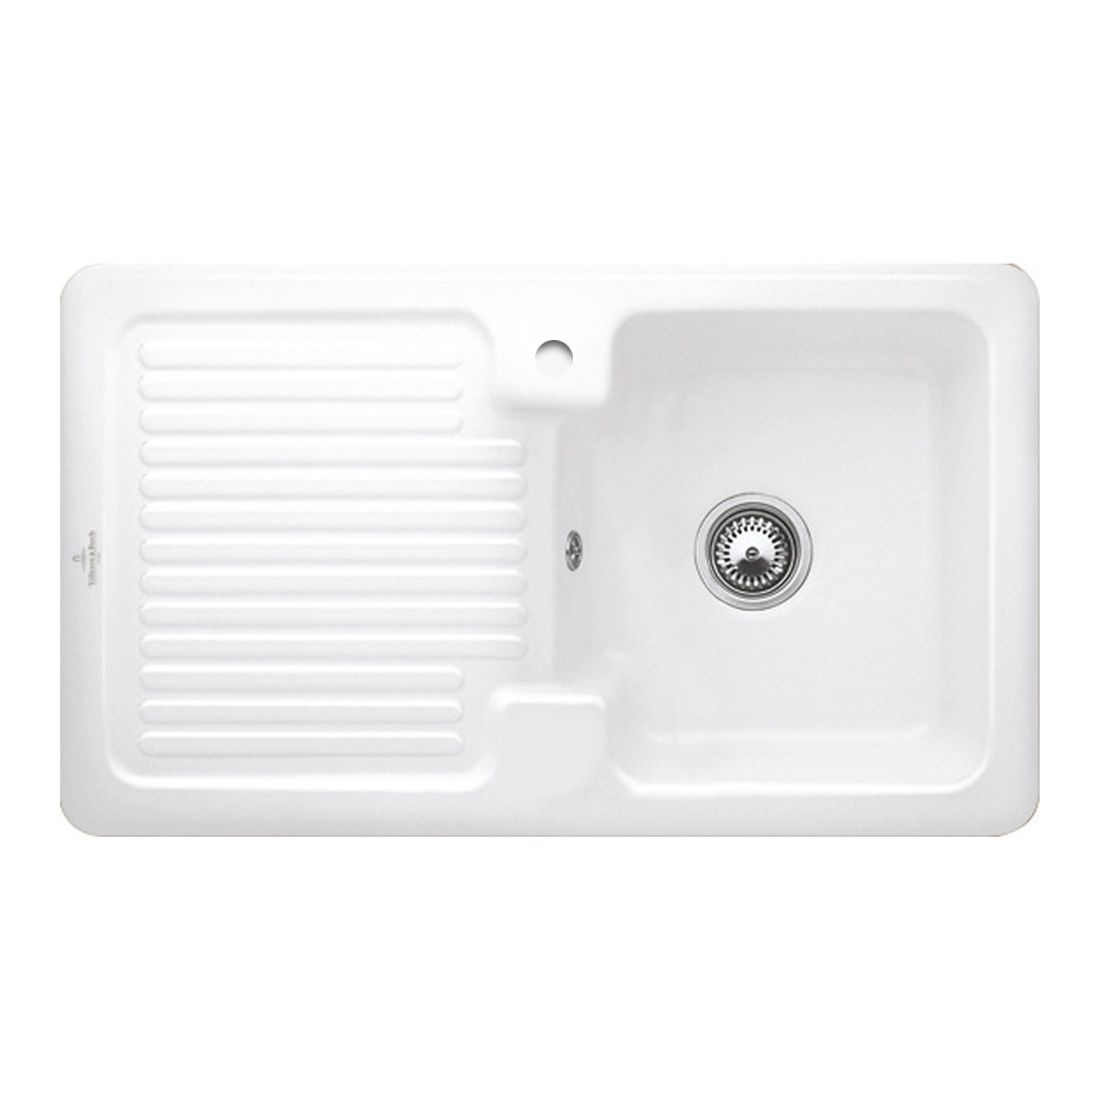 Villeroy boch condor 50 ceramic line sinks taps condor 50 10 bowl kitchen sink ceramic line workwithnaturefo